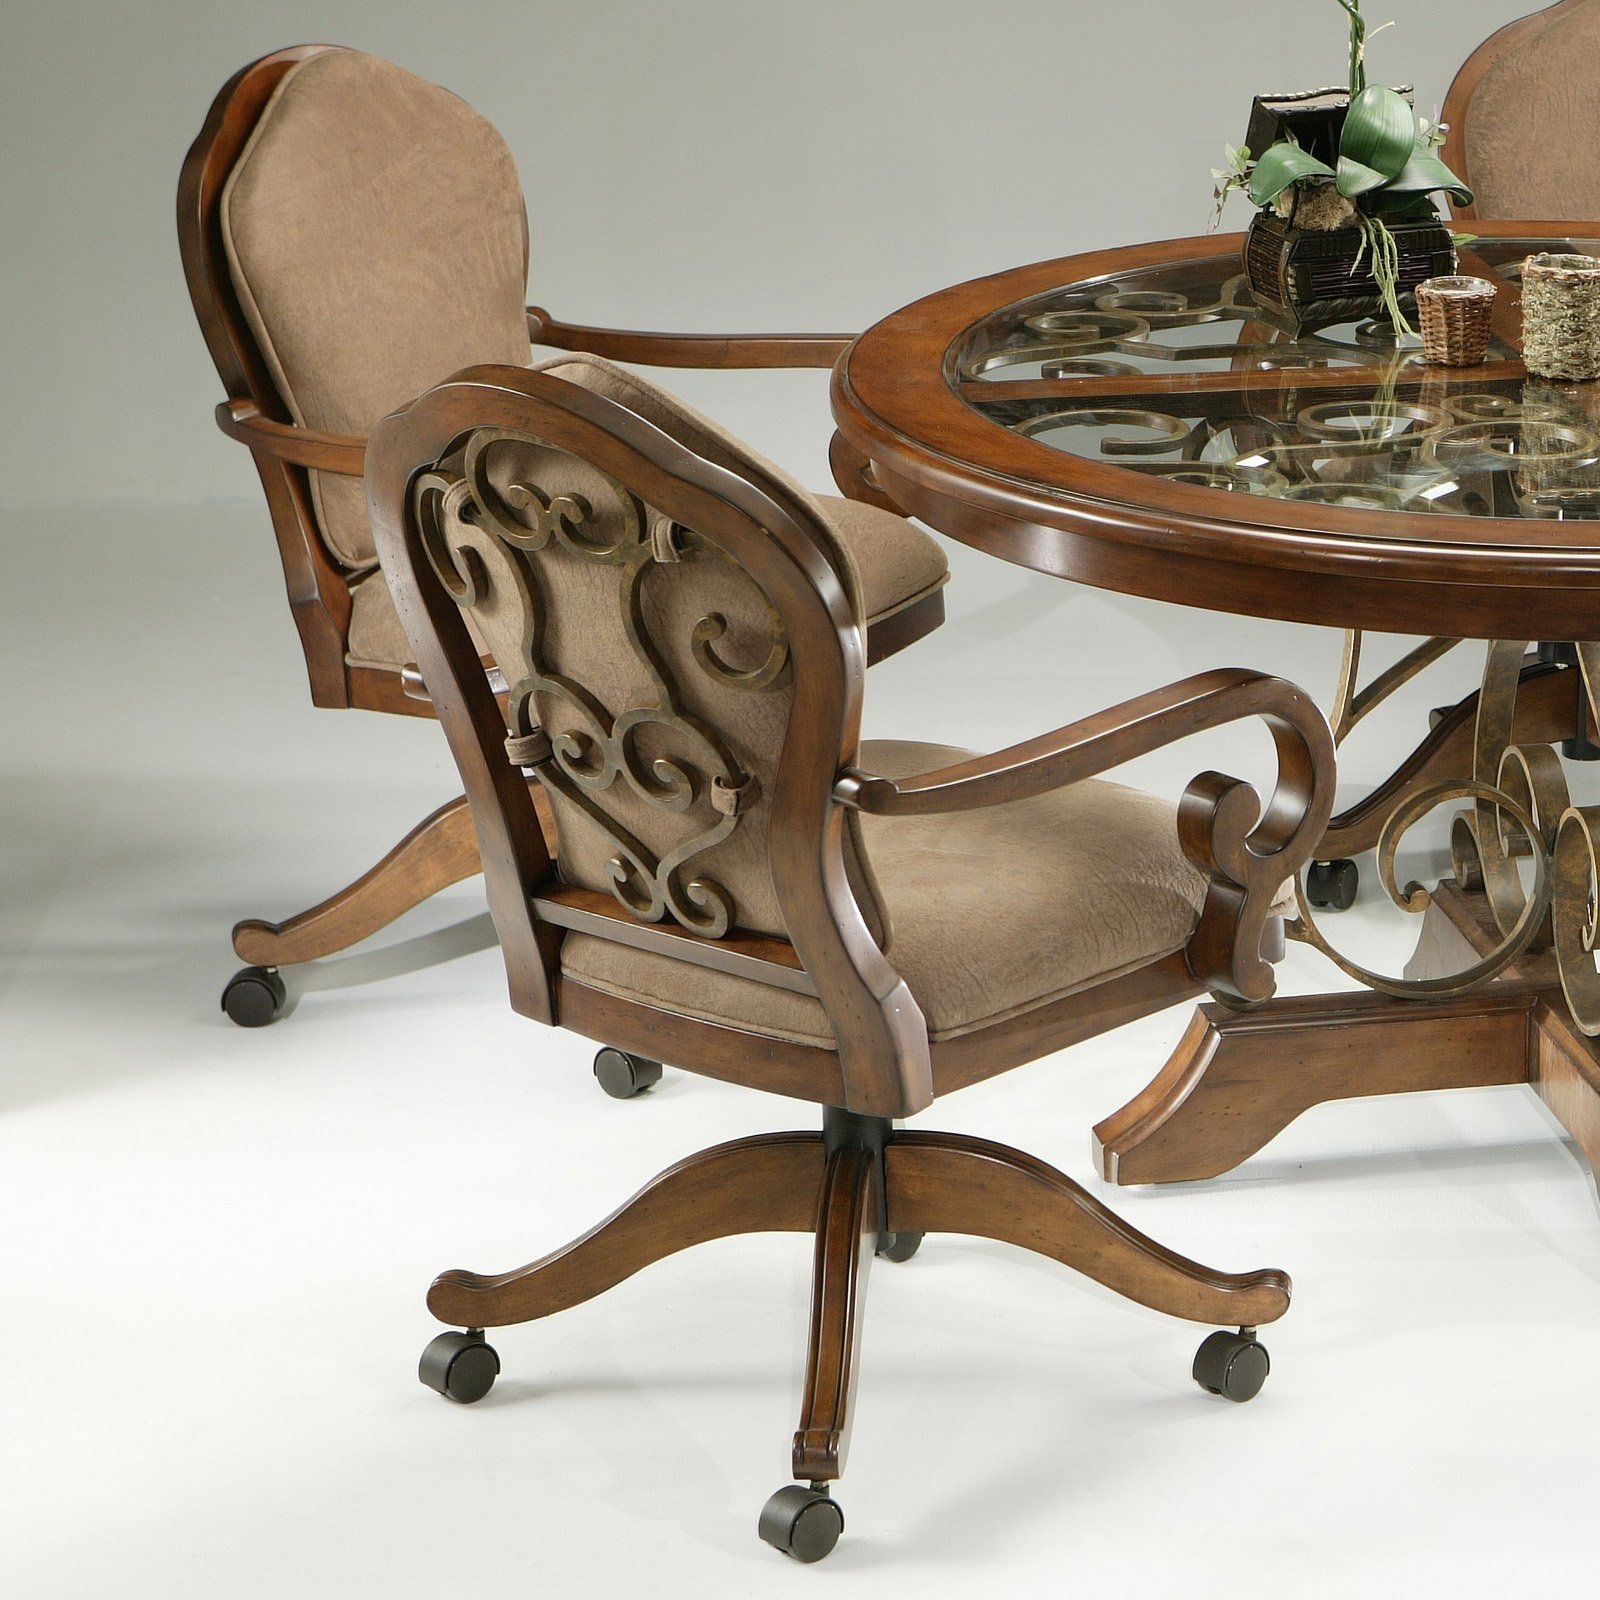 Dining Chairs With Casters You Ll Love, Fabric Dining Room Chairs With Casters